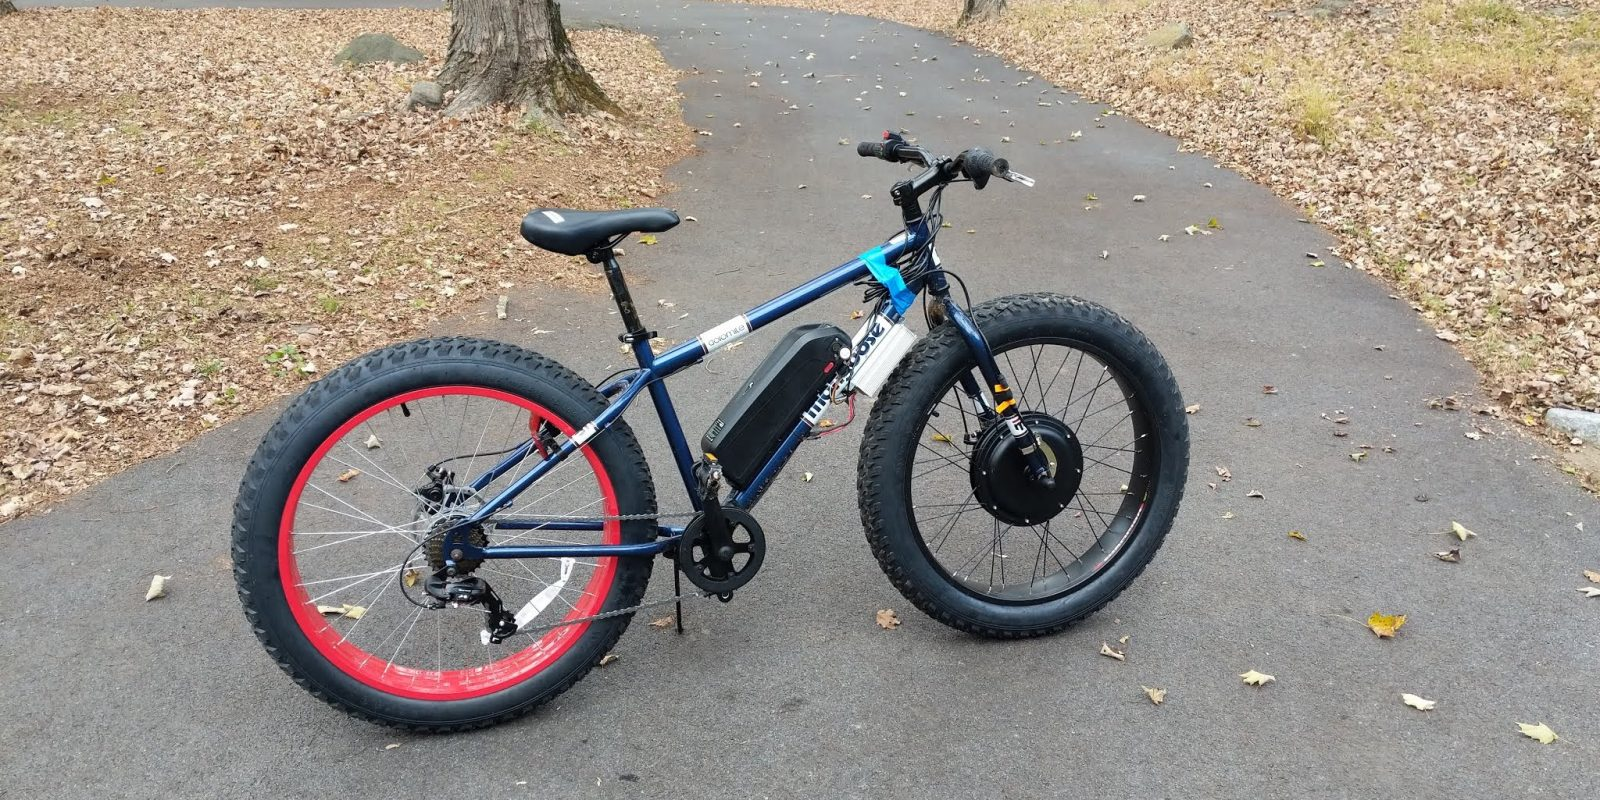 DIY ebike: 1kW Fat Tire AWD snow bike for $700 + 4 hours of work